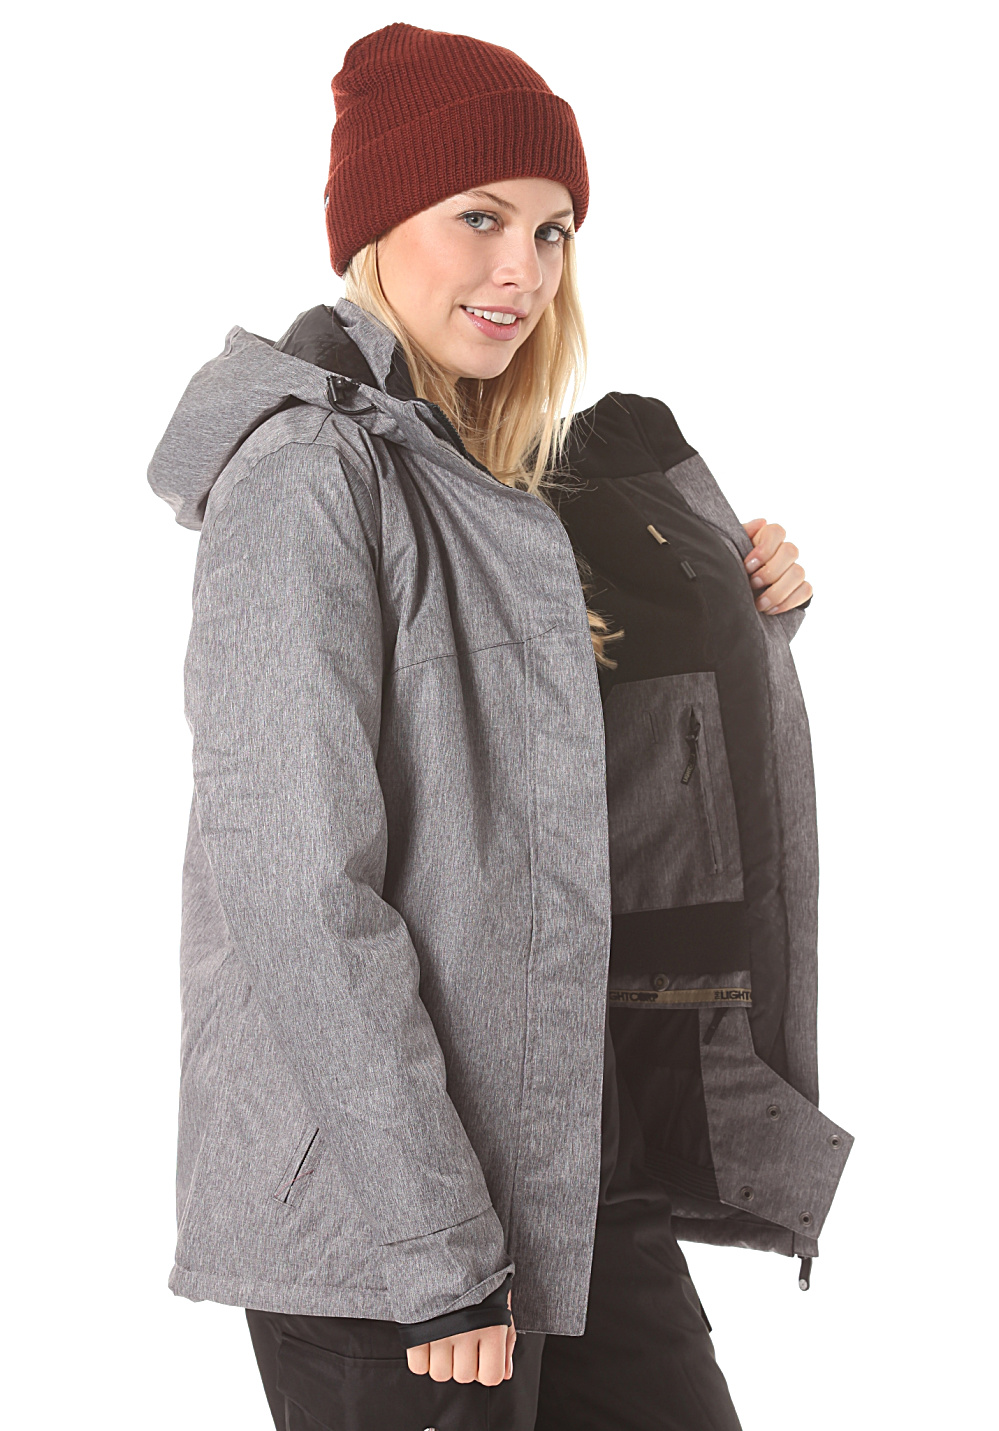 Crusader Grey Crusader Light Jacket Jacket Heather 4x58U